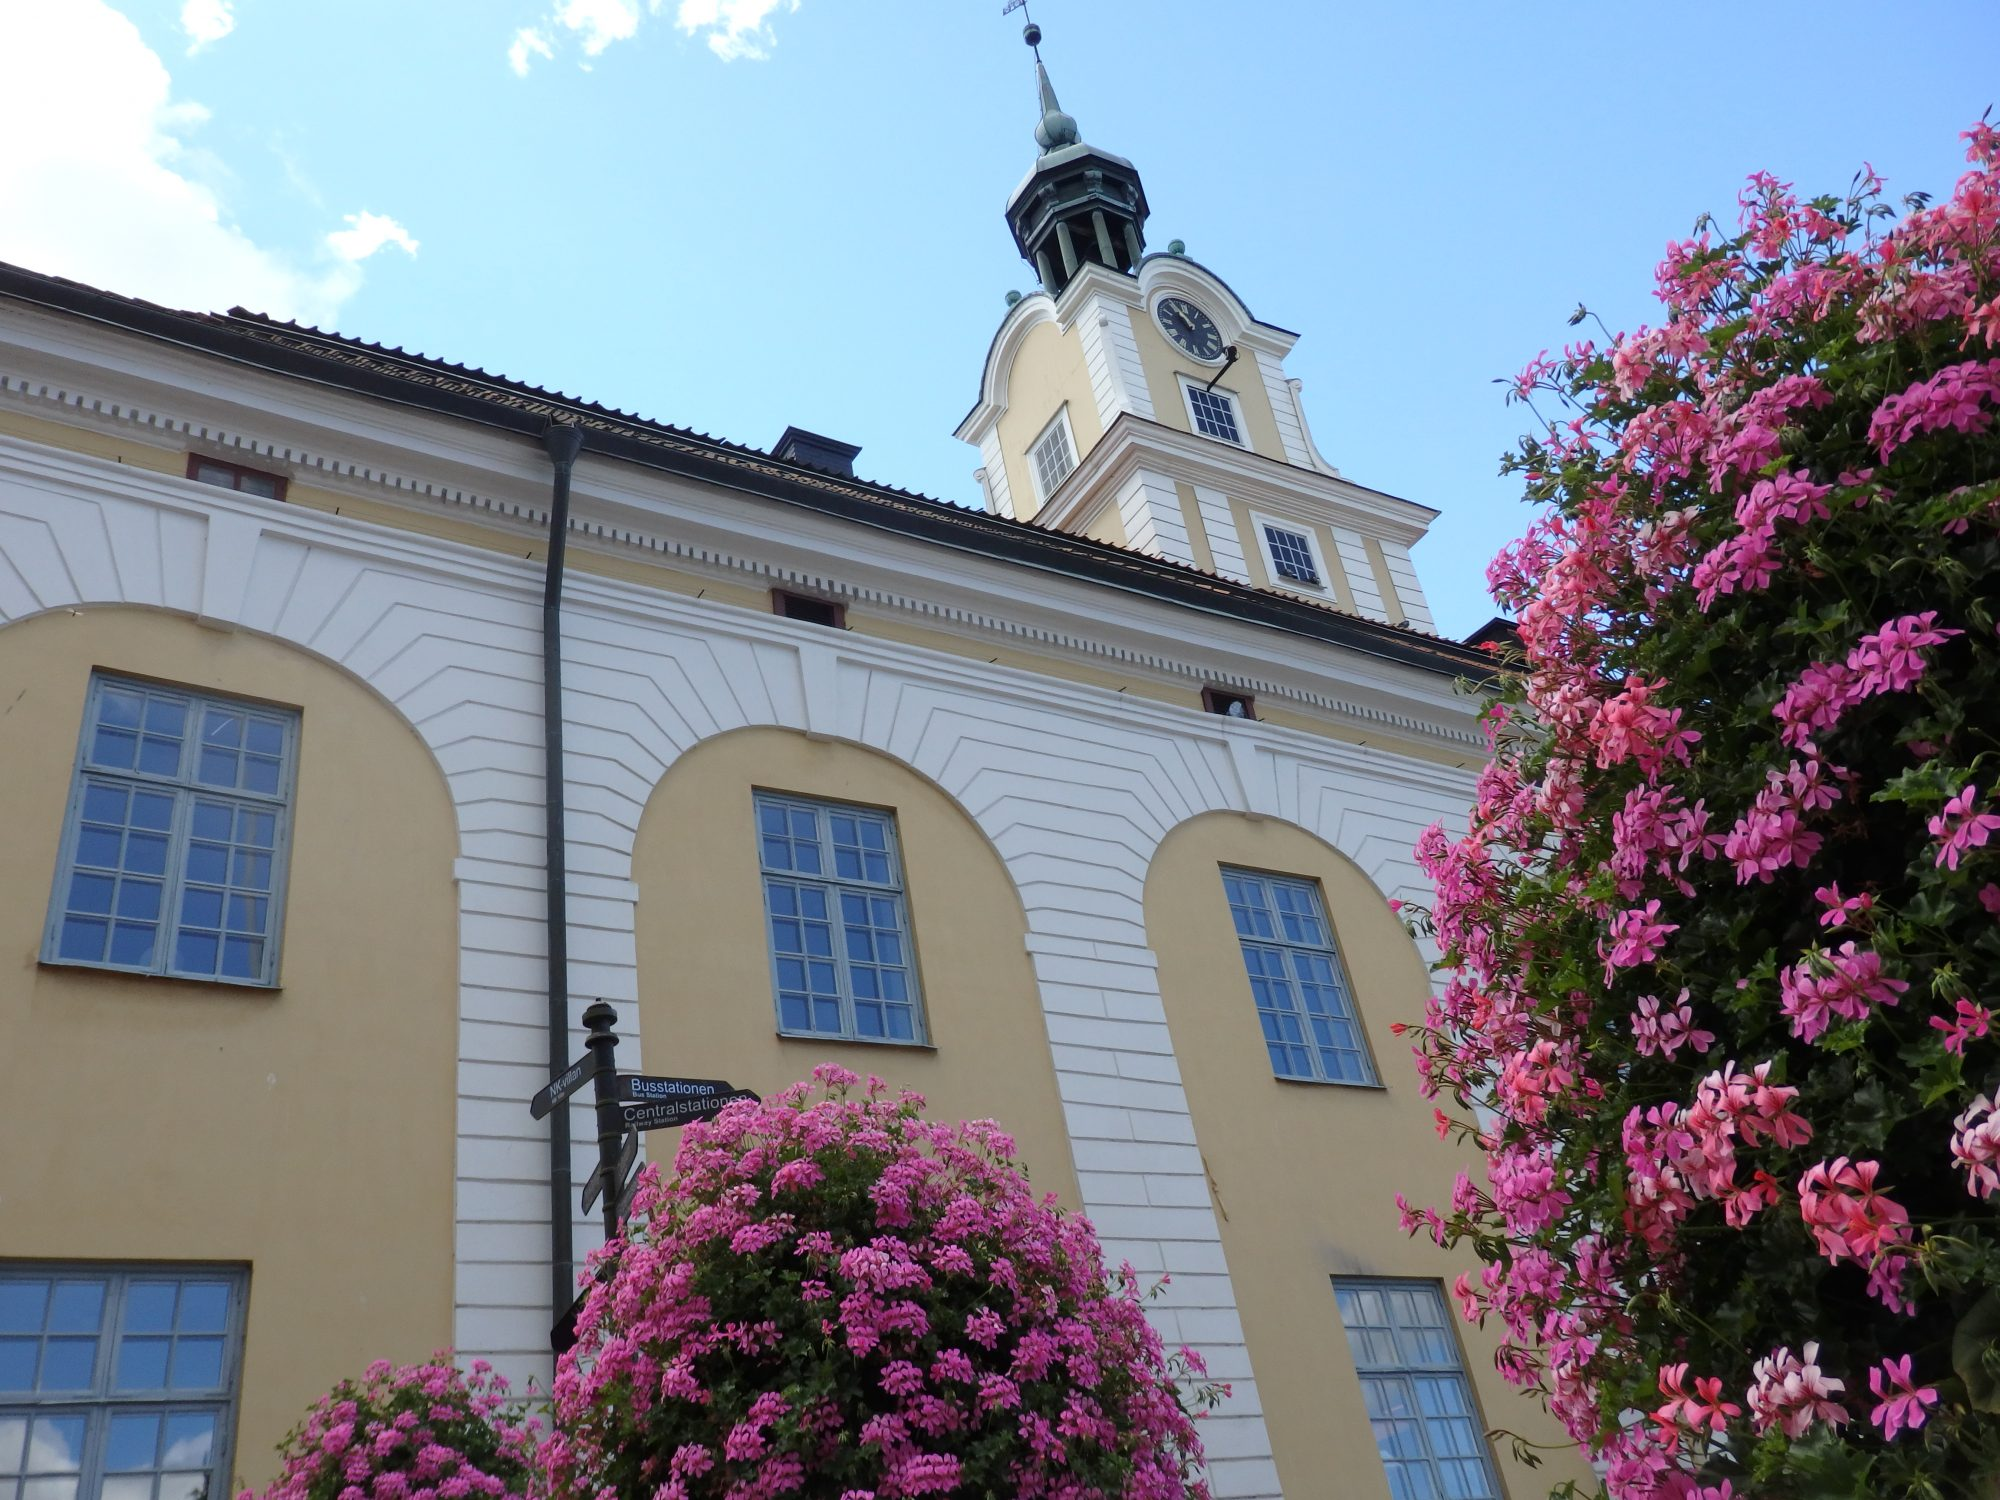 one more pretty picture in Nyköping